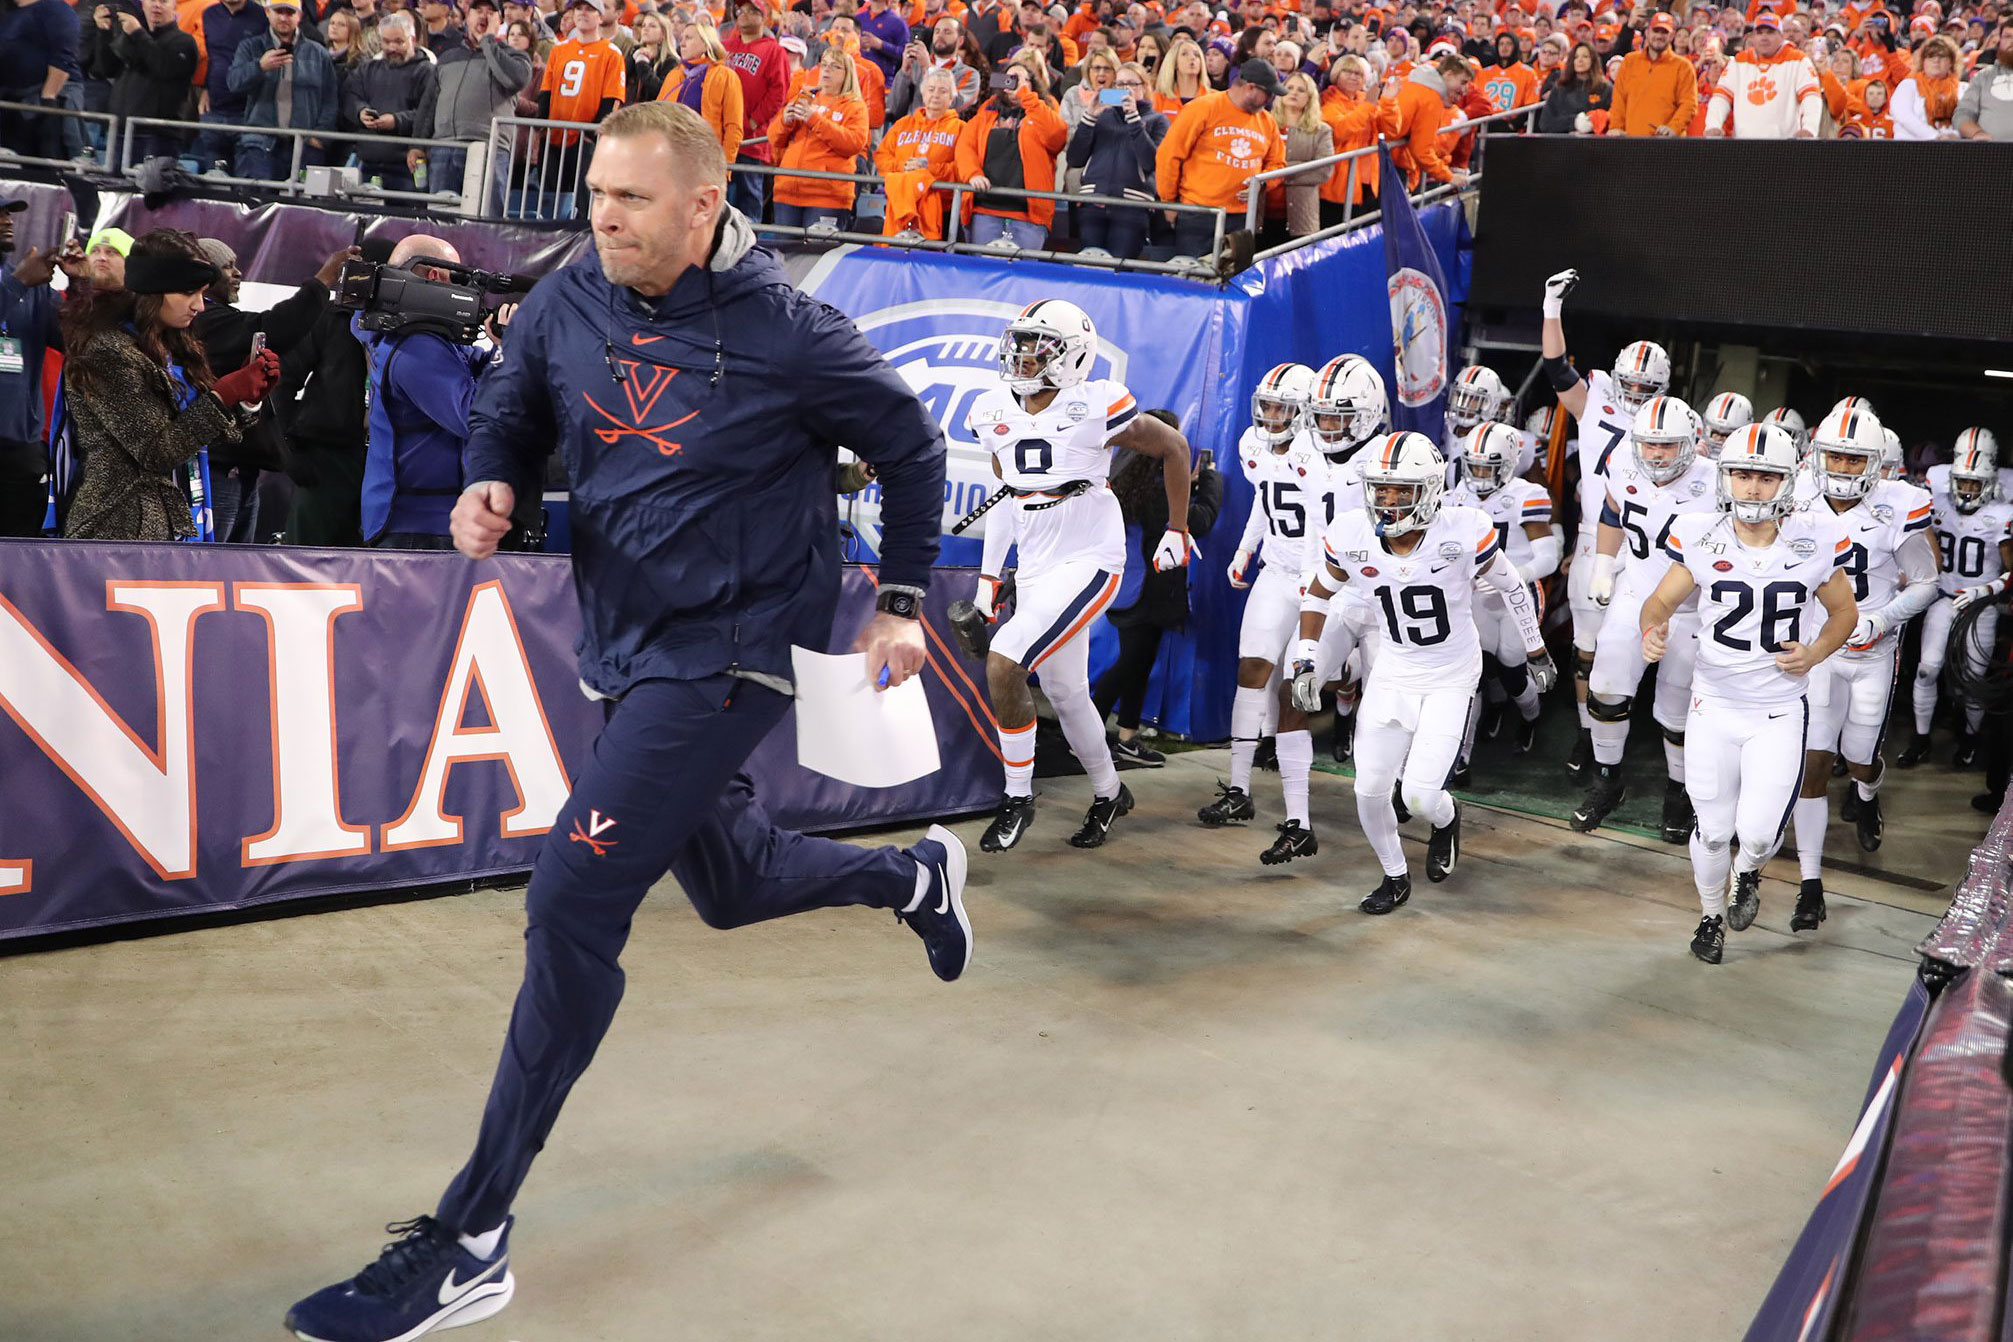 Coach Bronco Mendenhall and the UVA Cavaliers will face Florida on Dec. 30 in the Capital One Orange Bowl, the Hoos' first appearance in the storied New Year's Six game. (Photo by Matt Riley, UVA Athletics)